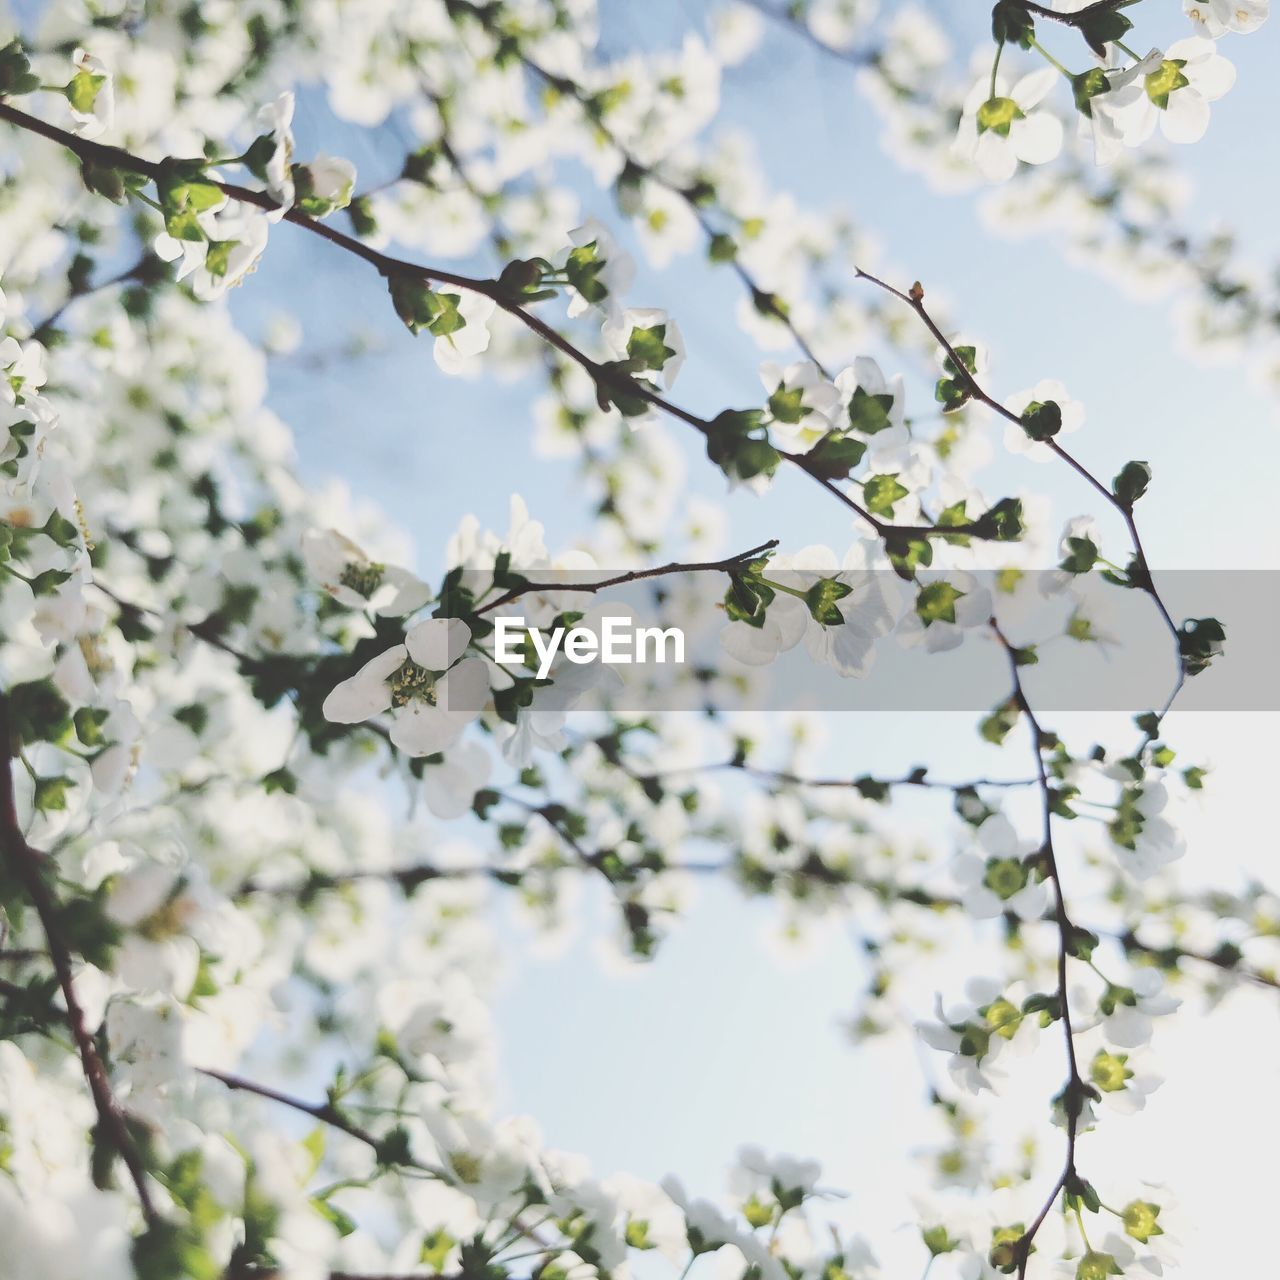 flower, branch, tree, fragility, freshness, beauty in nature, springtime, blossom, nature, white color, apple tree, apple blossom, growth, botany, low angle view, no people, day, twig, outdoors, close-up, flower head